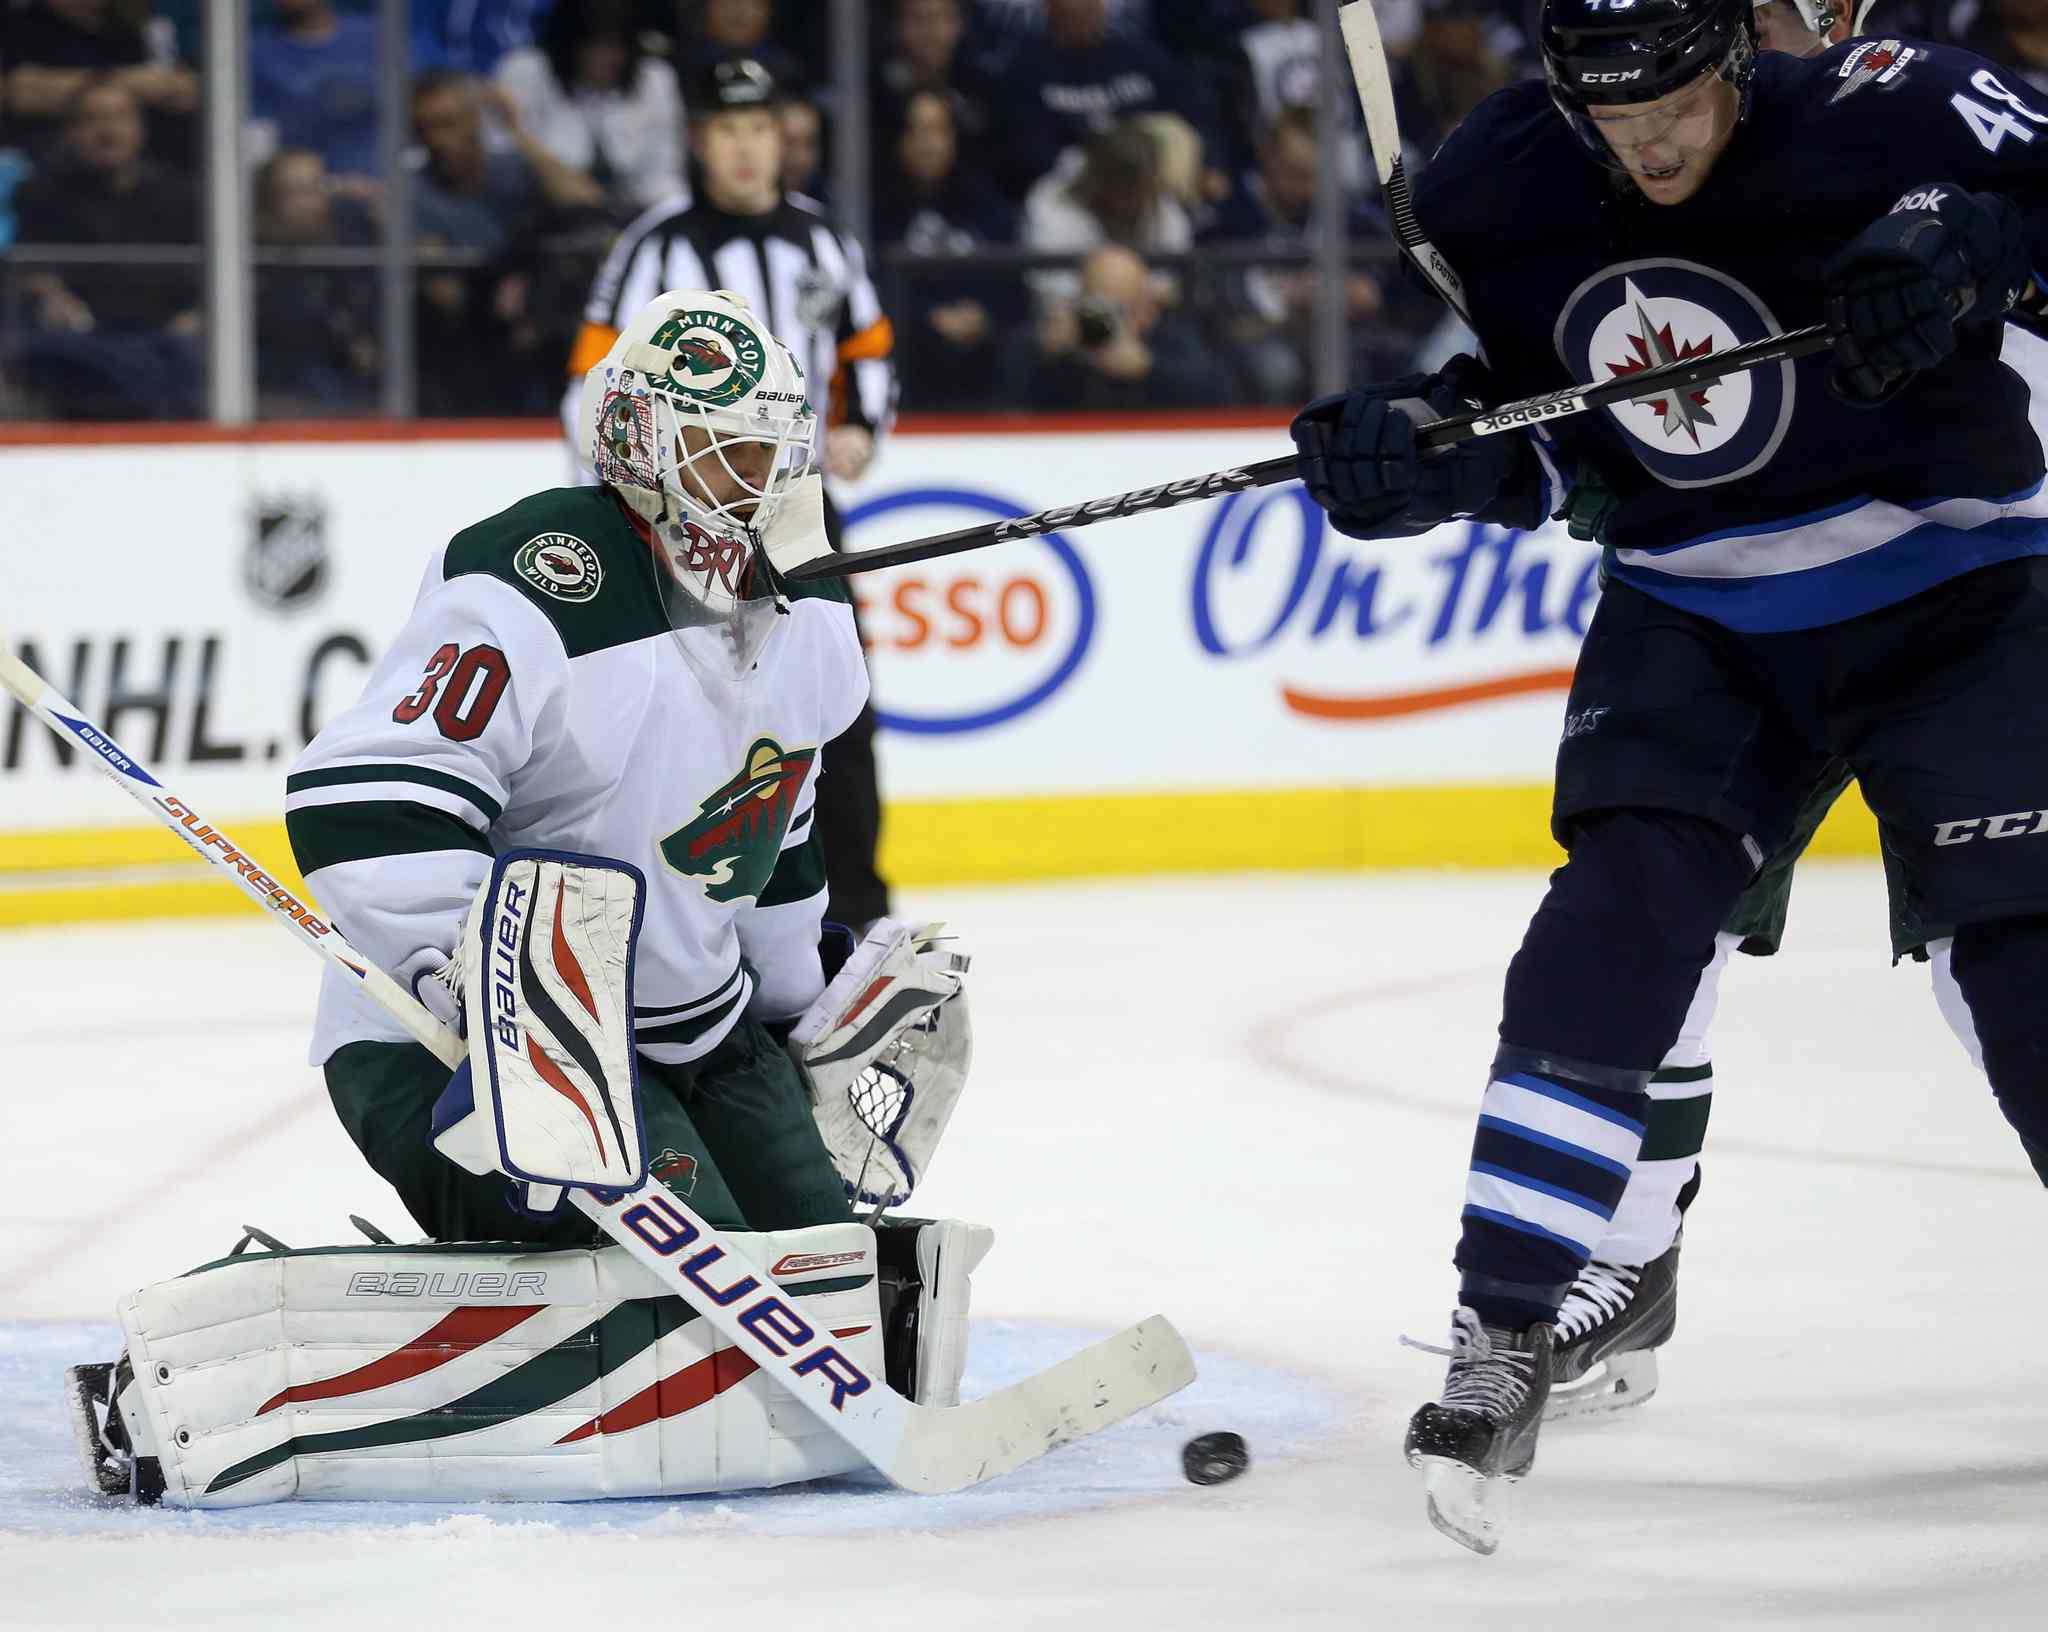 The Wild's Ilya Bryzgalov takes a stick to the mask from the Jets' Carl Klingberg during the second period.